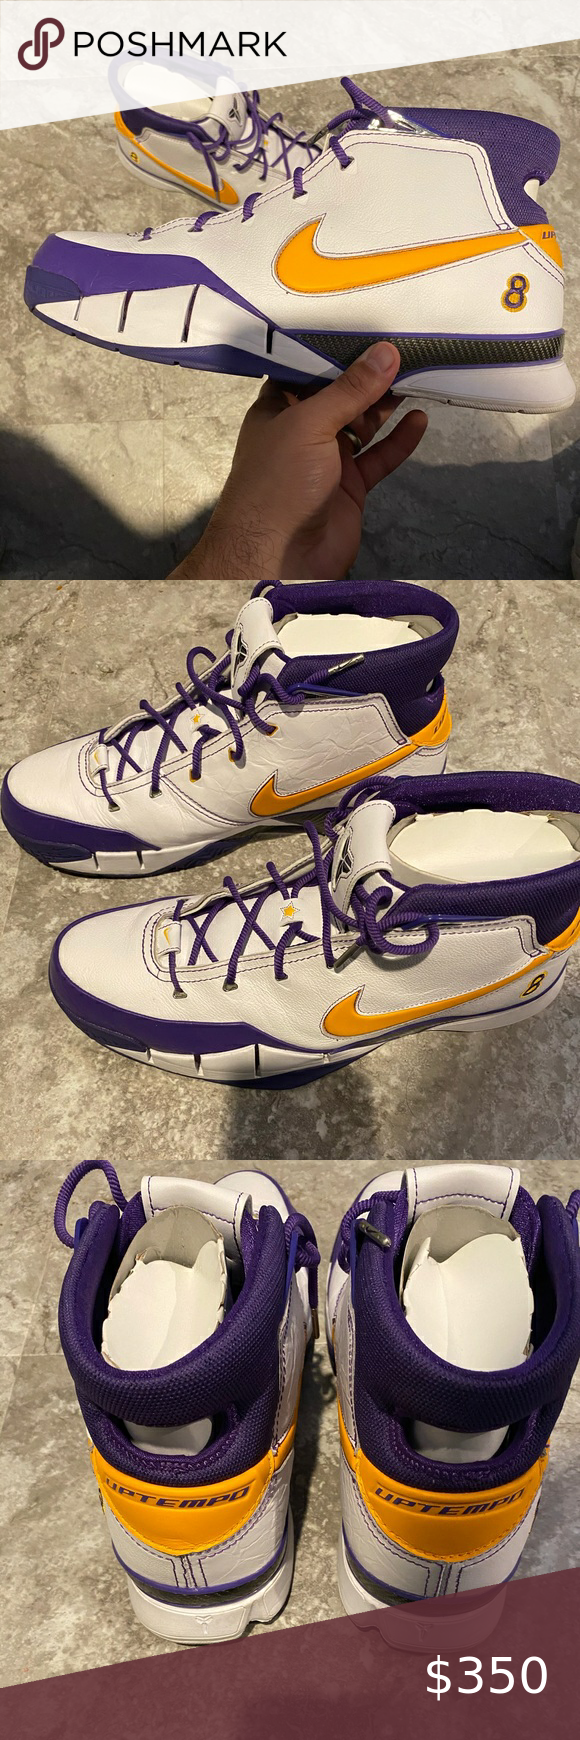 Kobe Bryant Nike 1 Los Angeles Lakers Final Second In 2020 Los Angeles Lakers Nike Gold Kobe Bryant